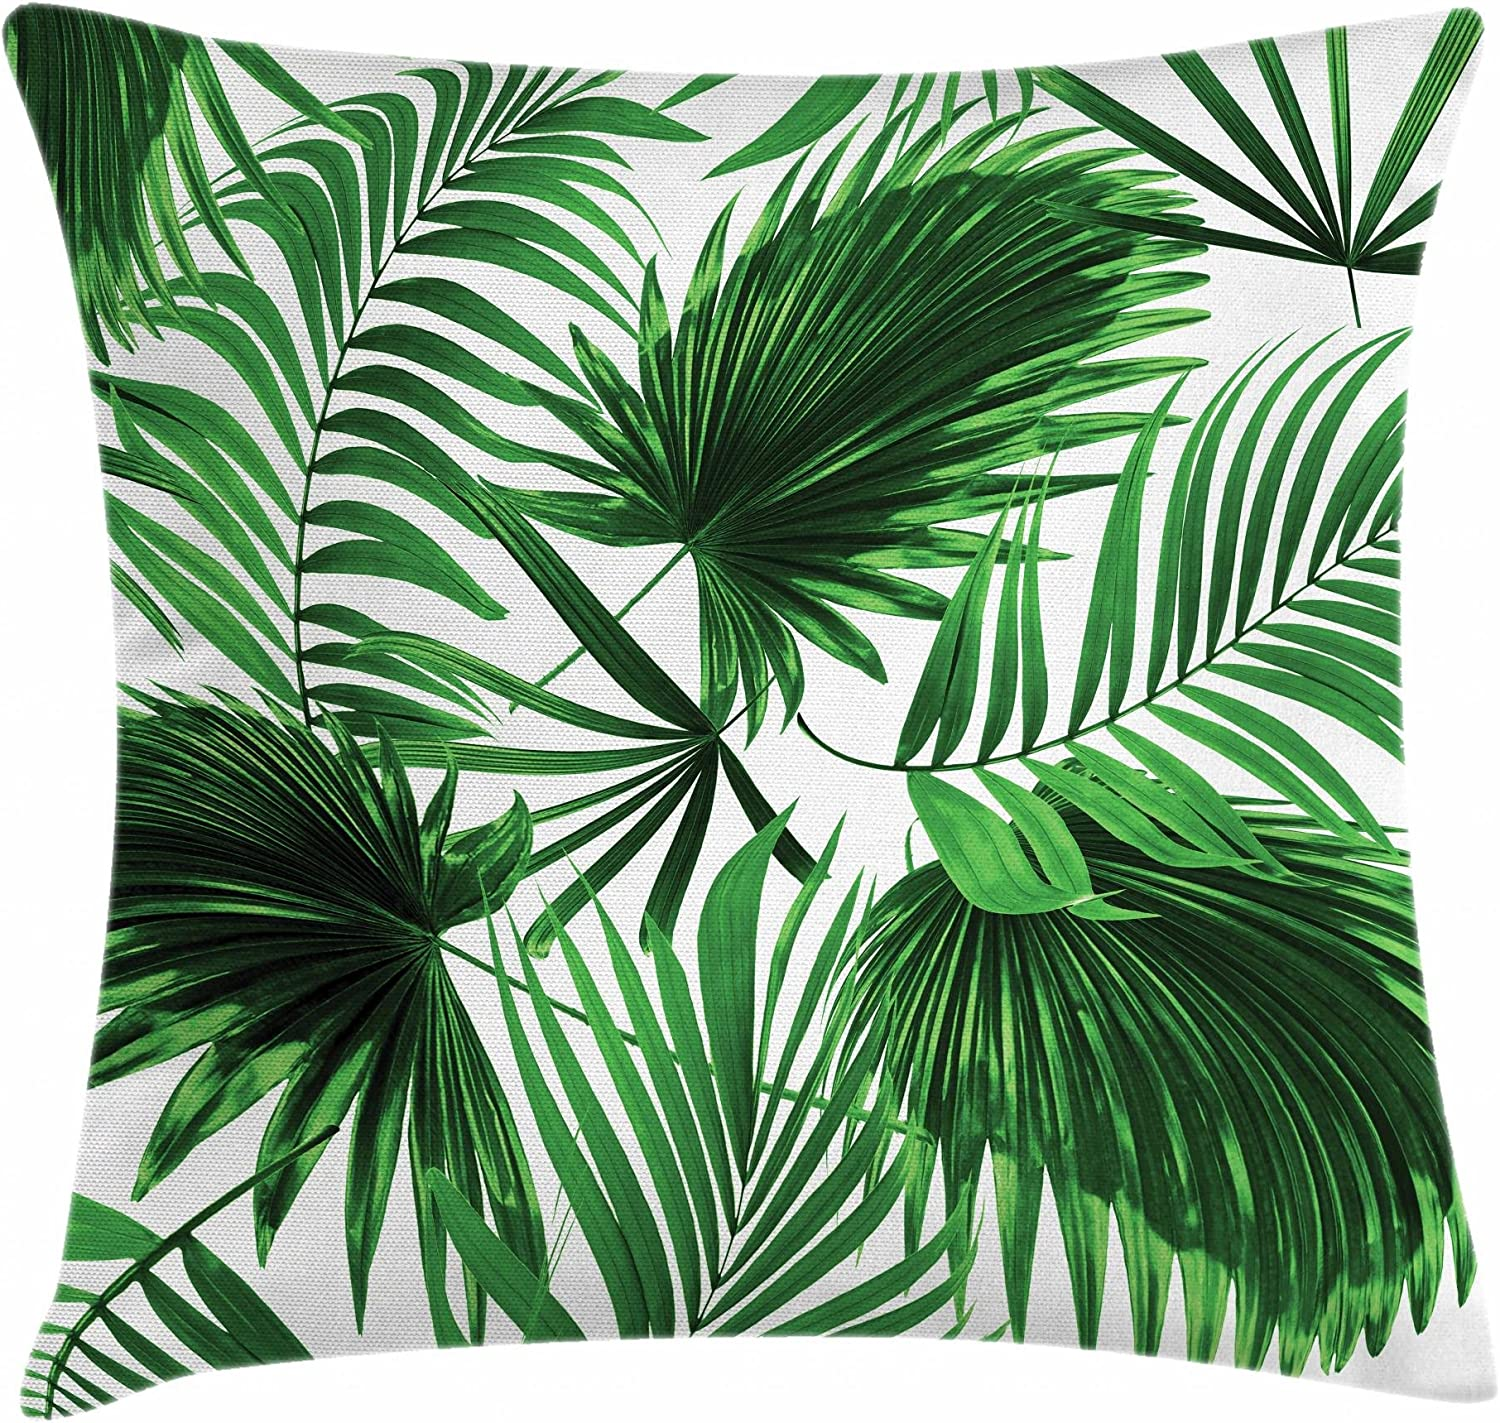 Amazon Com Ambesonne Palm Leaf Throw Pillow Cushion Cover Realistic Vivid Leaves Of Palm Tree Growth Ecology Botany Themed Print Decorative Square Accent Pillow Case 24 X 24 Fern Green Home Kitchen